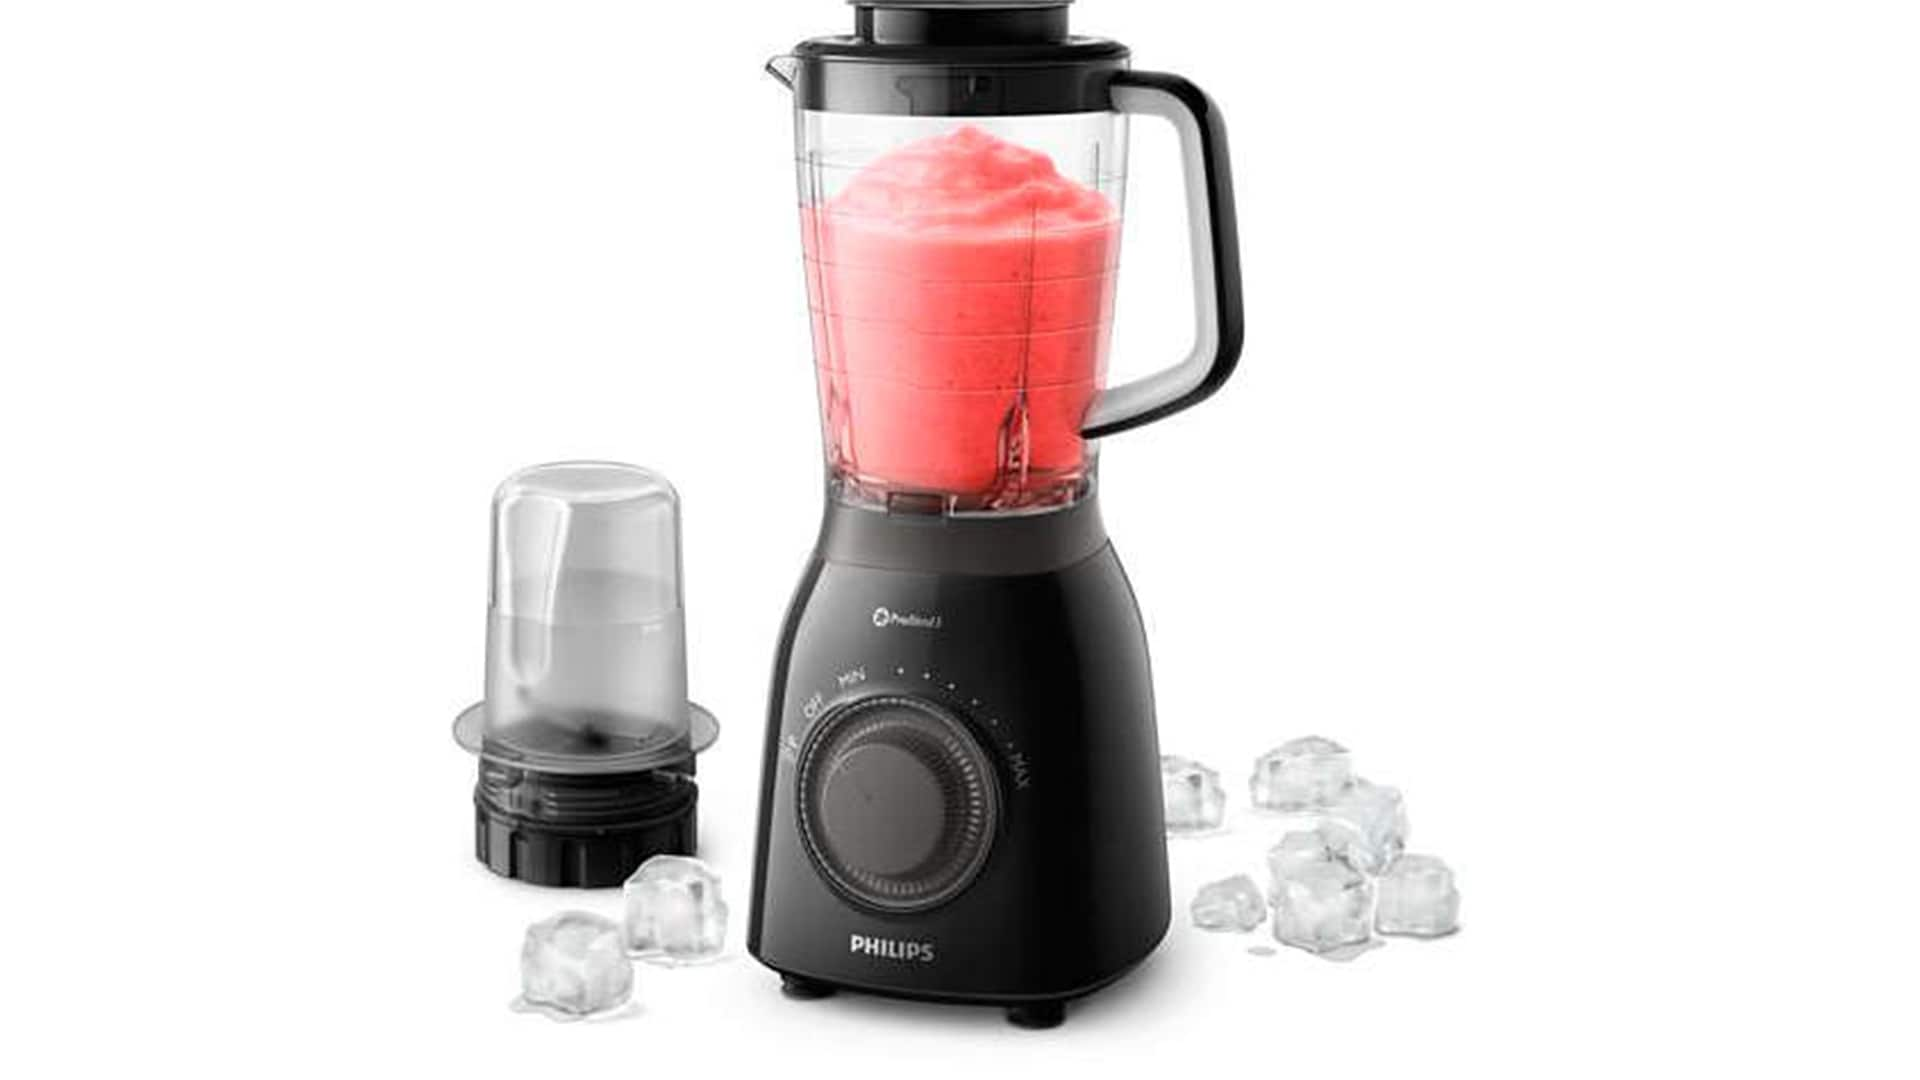 Download image (.jpg) make frozen smoothies with ease with the philips viva collection blender (opens in a new window)